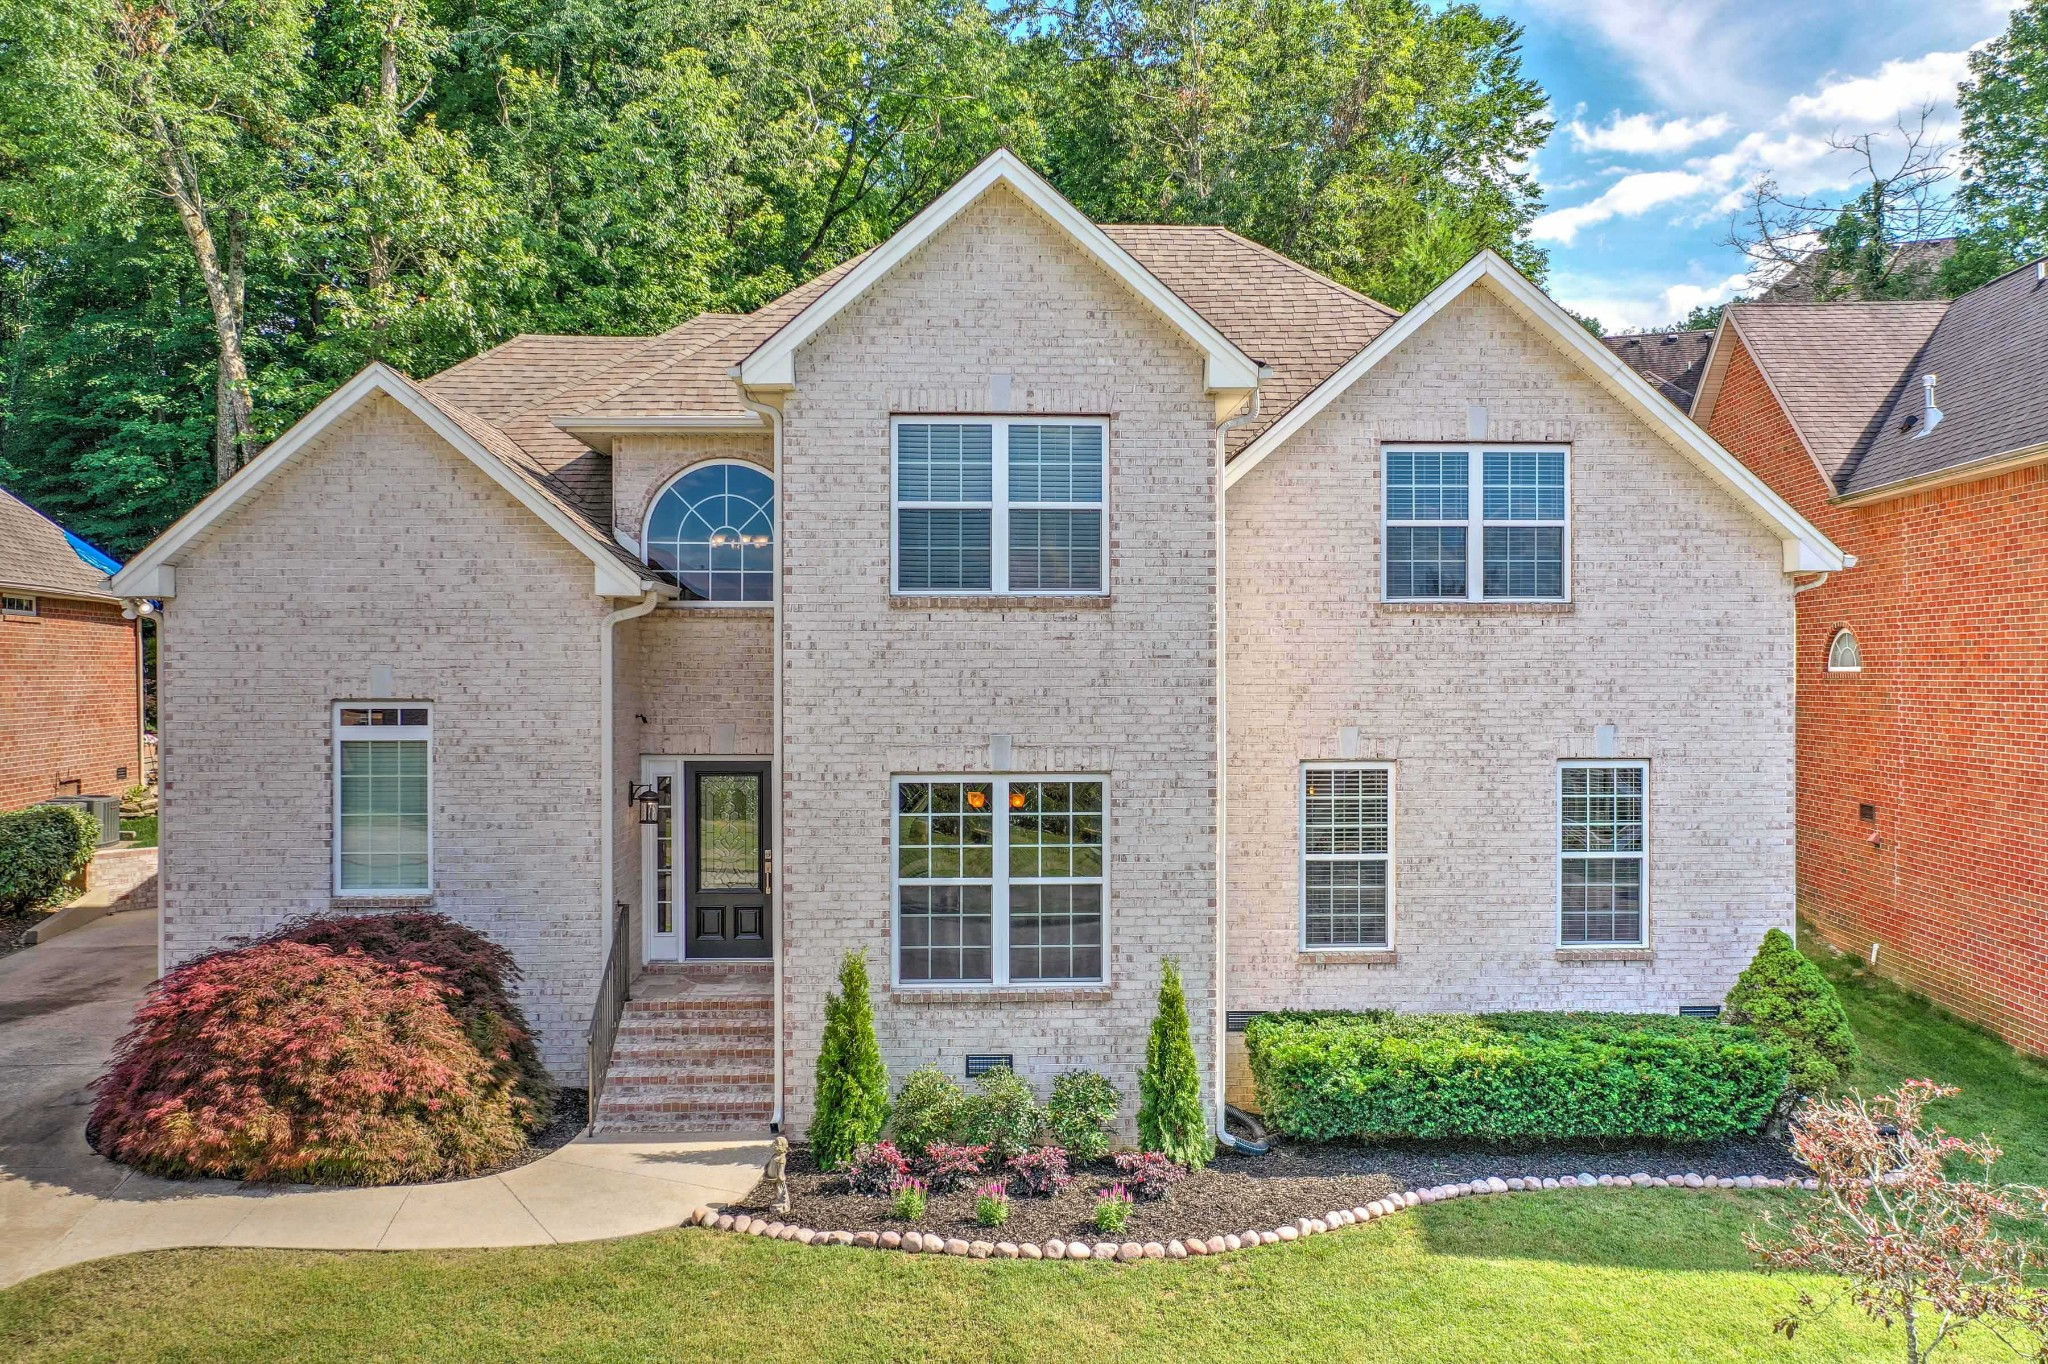 1308 Weeping Cherry Ln Property Photo - Hermitage, TN real estate listing